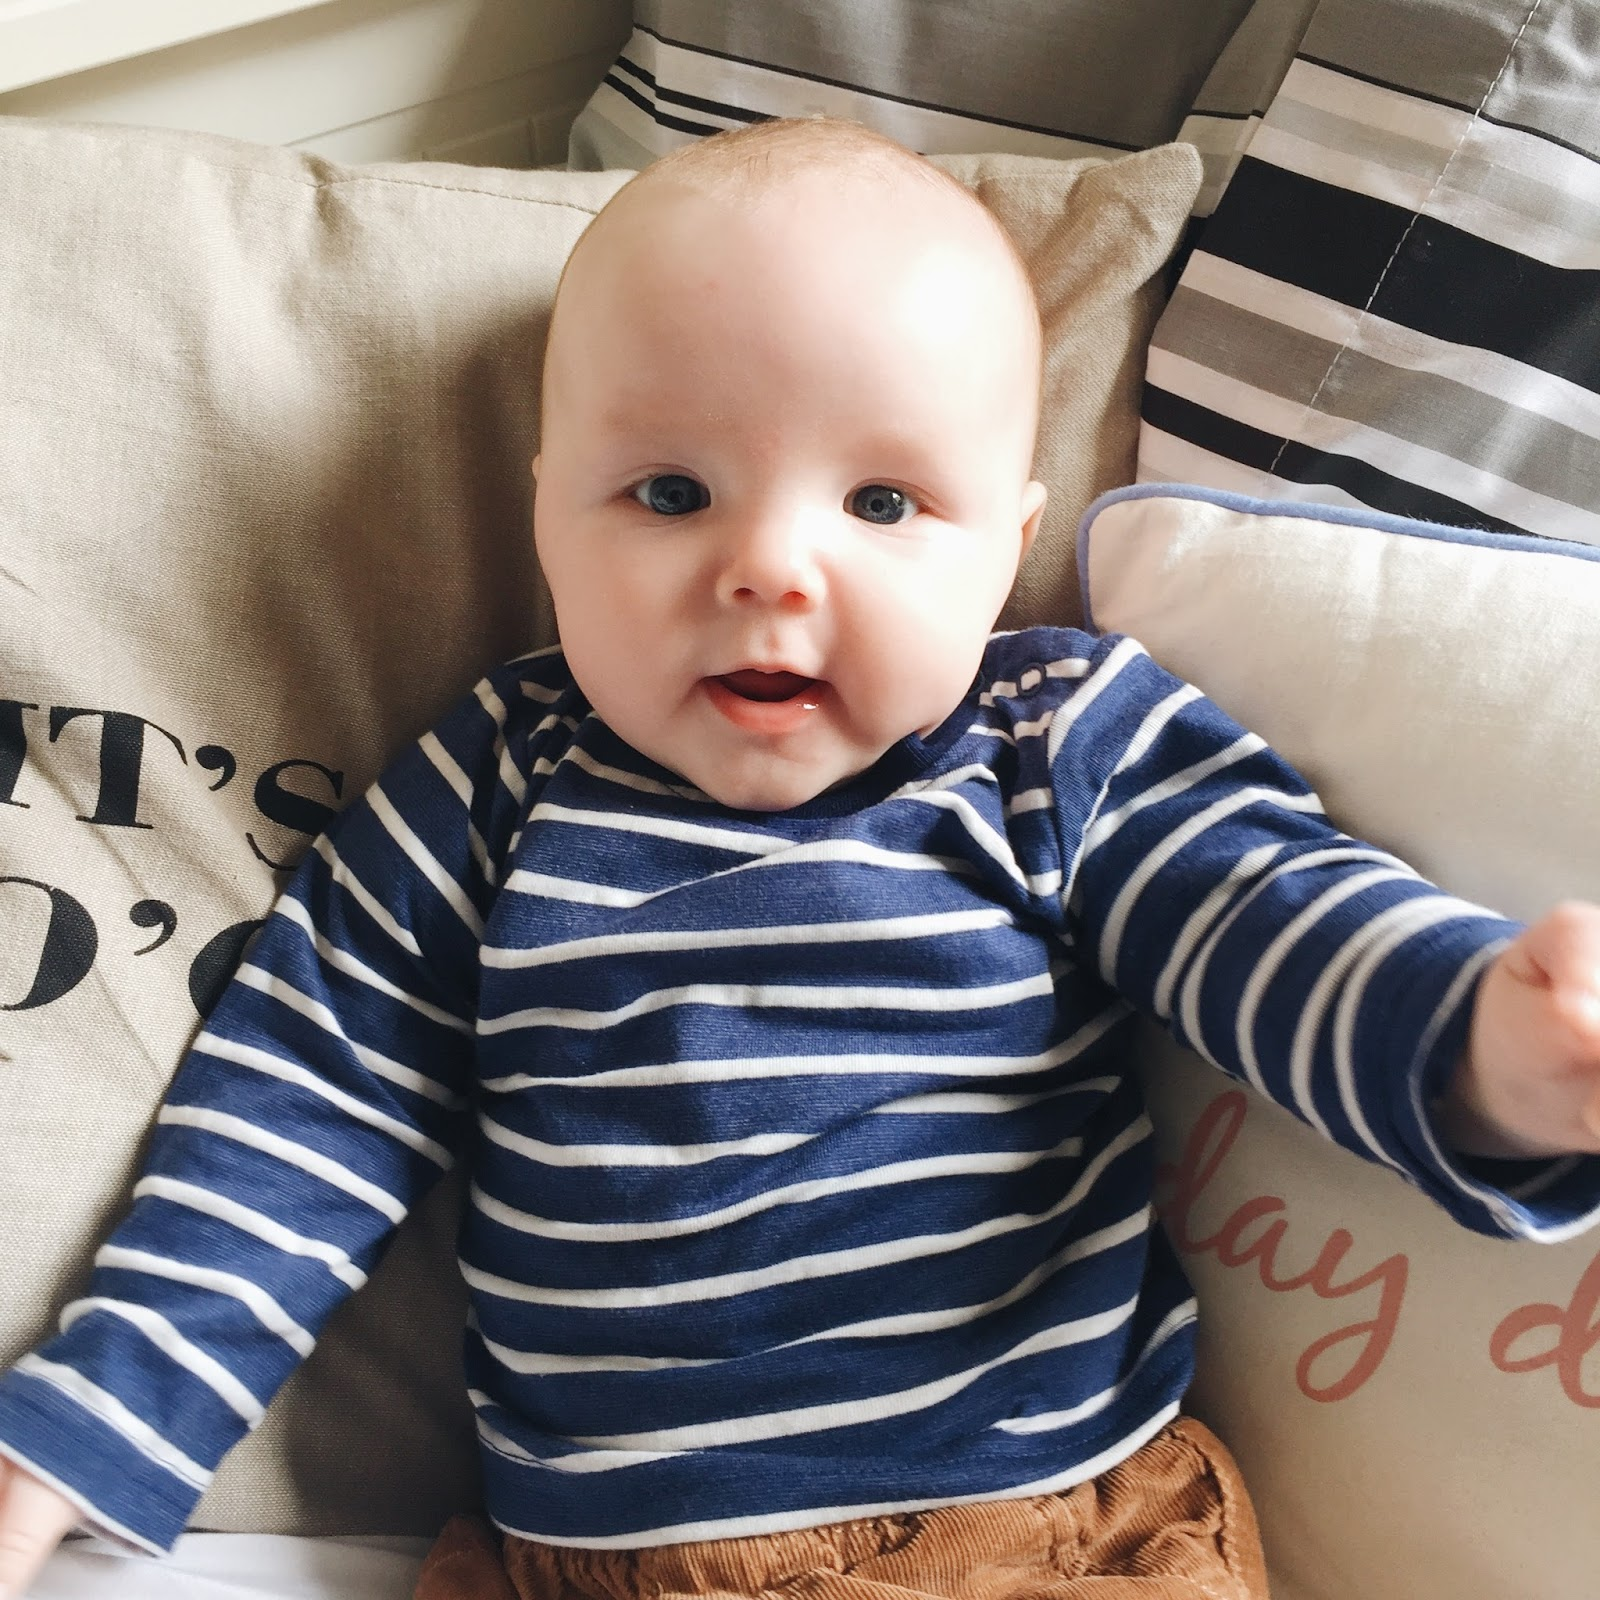 TYLER IS 3 MONTHS OLD | Love, Maisie